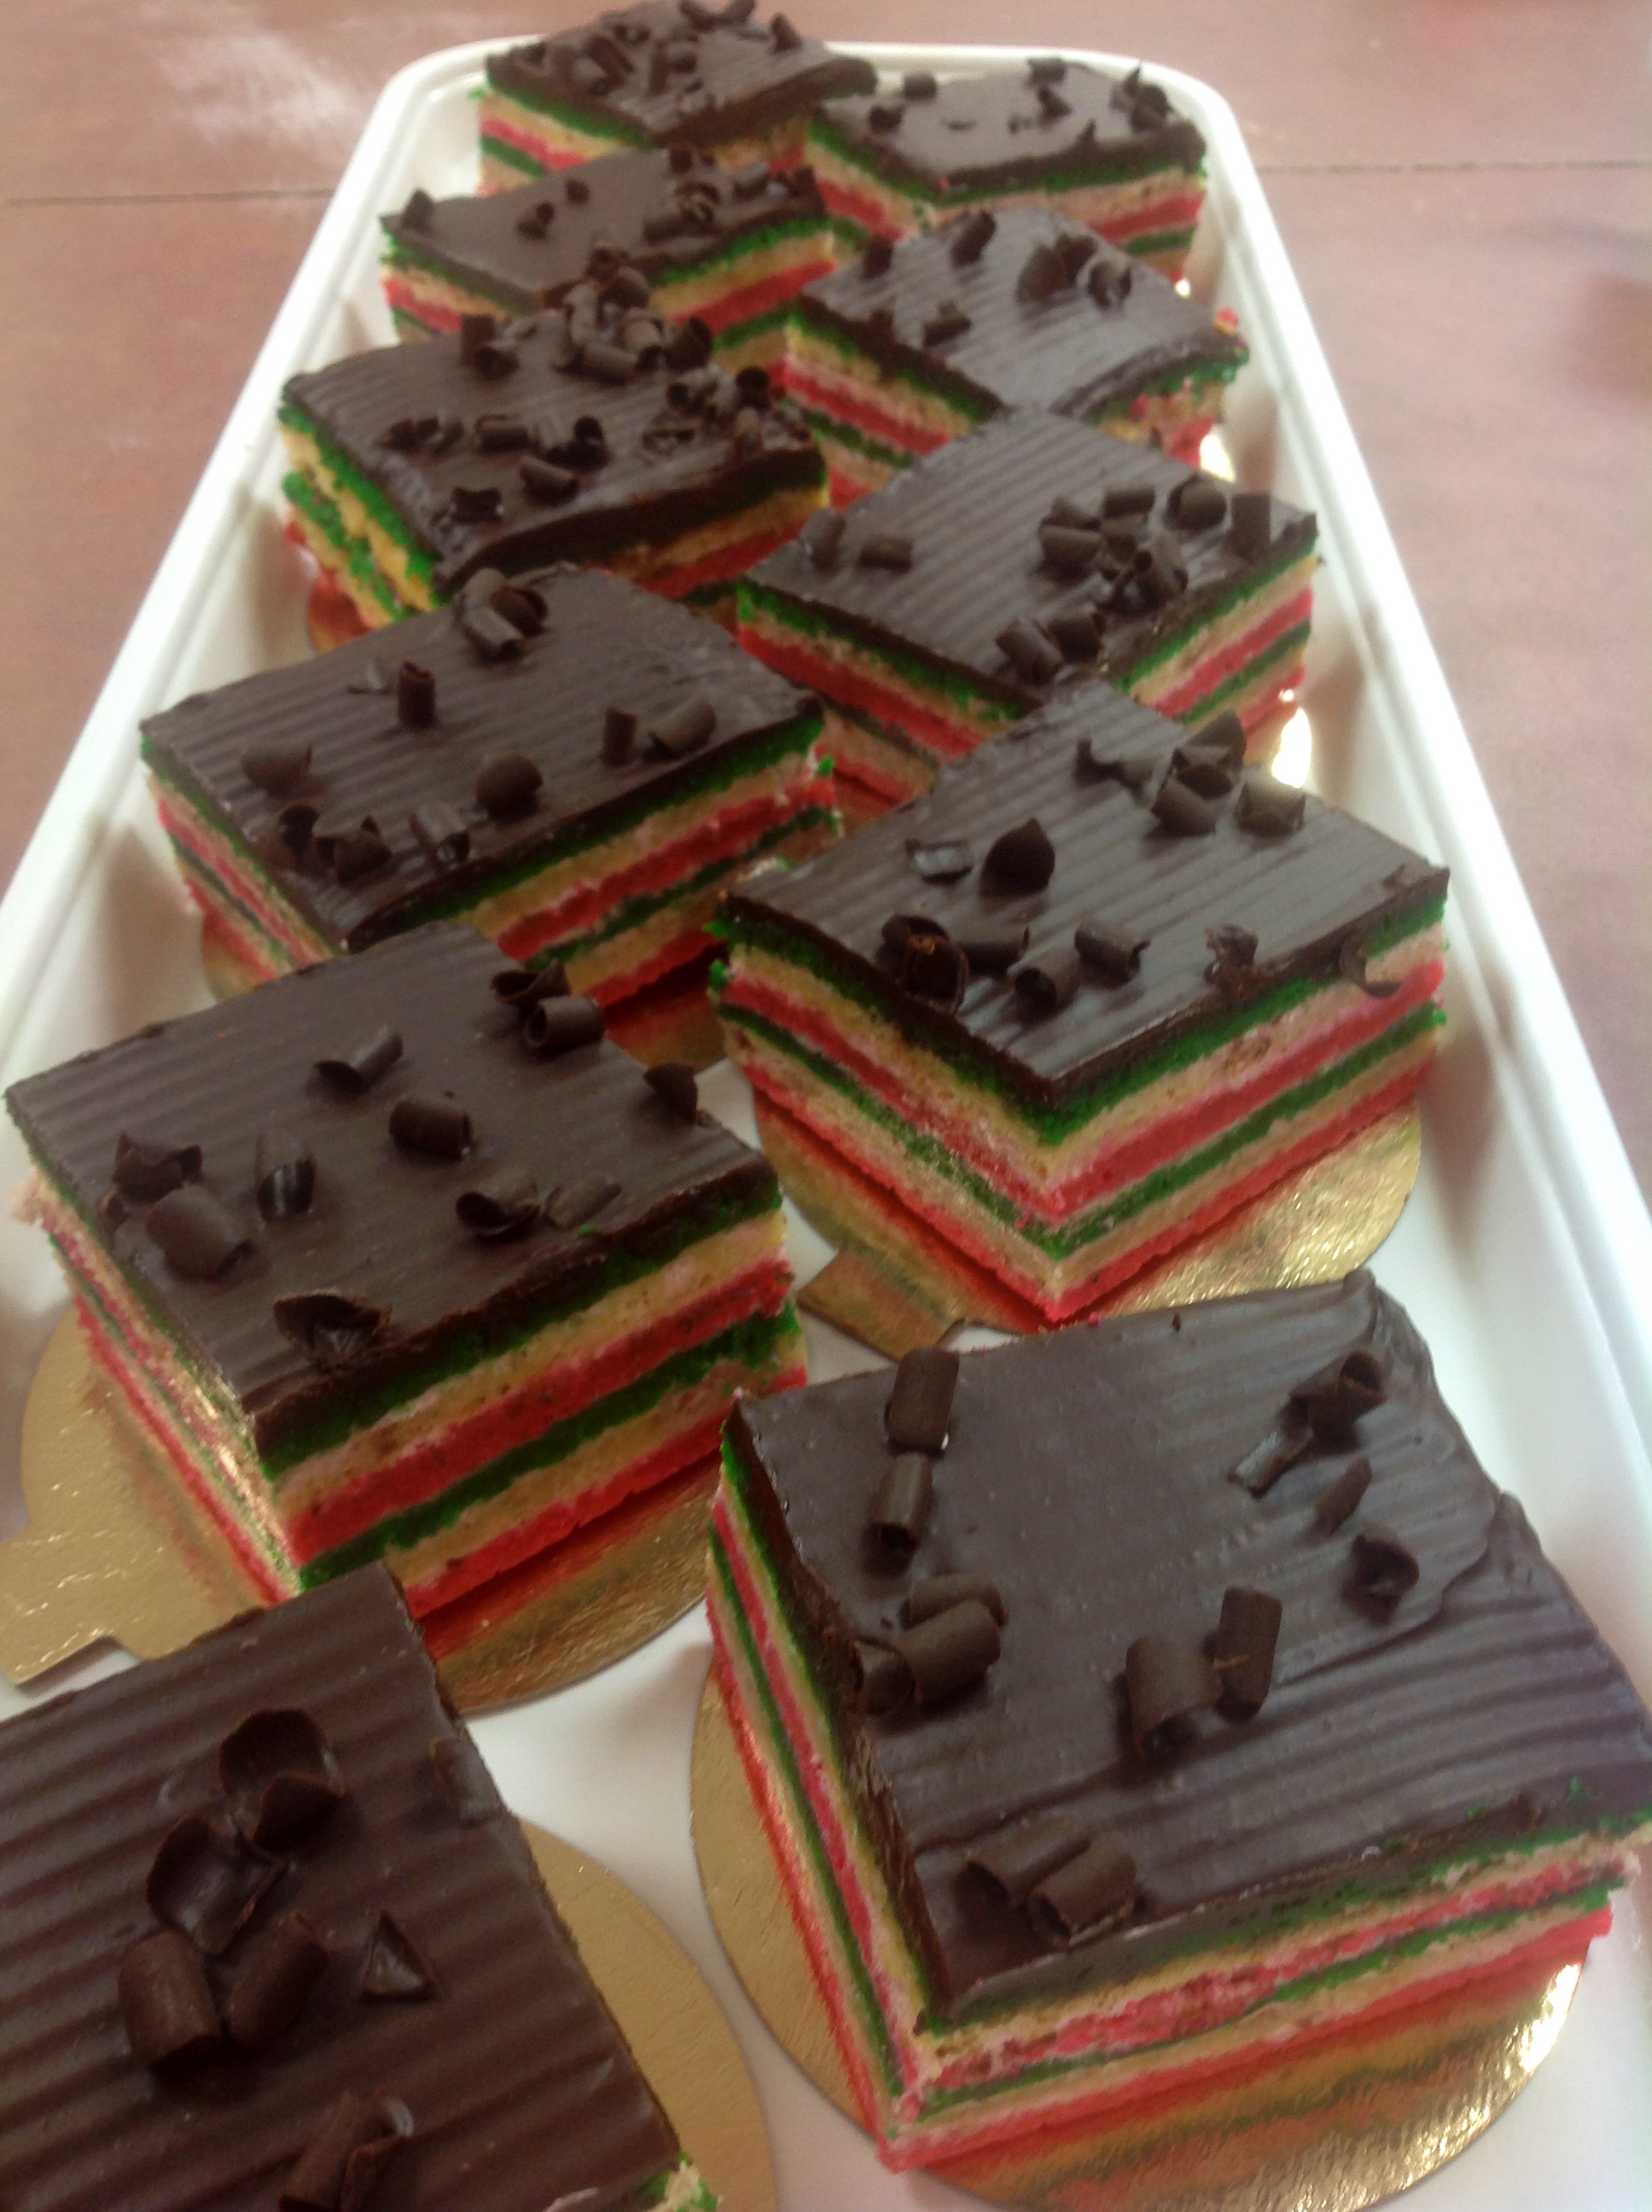 Gluten free individual desserts at Dolce and Biscotti Italian Bakery